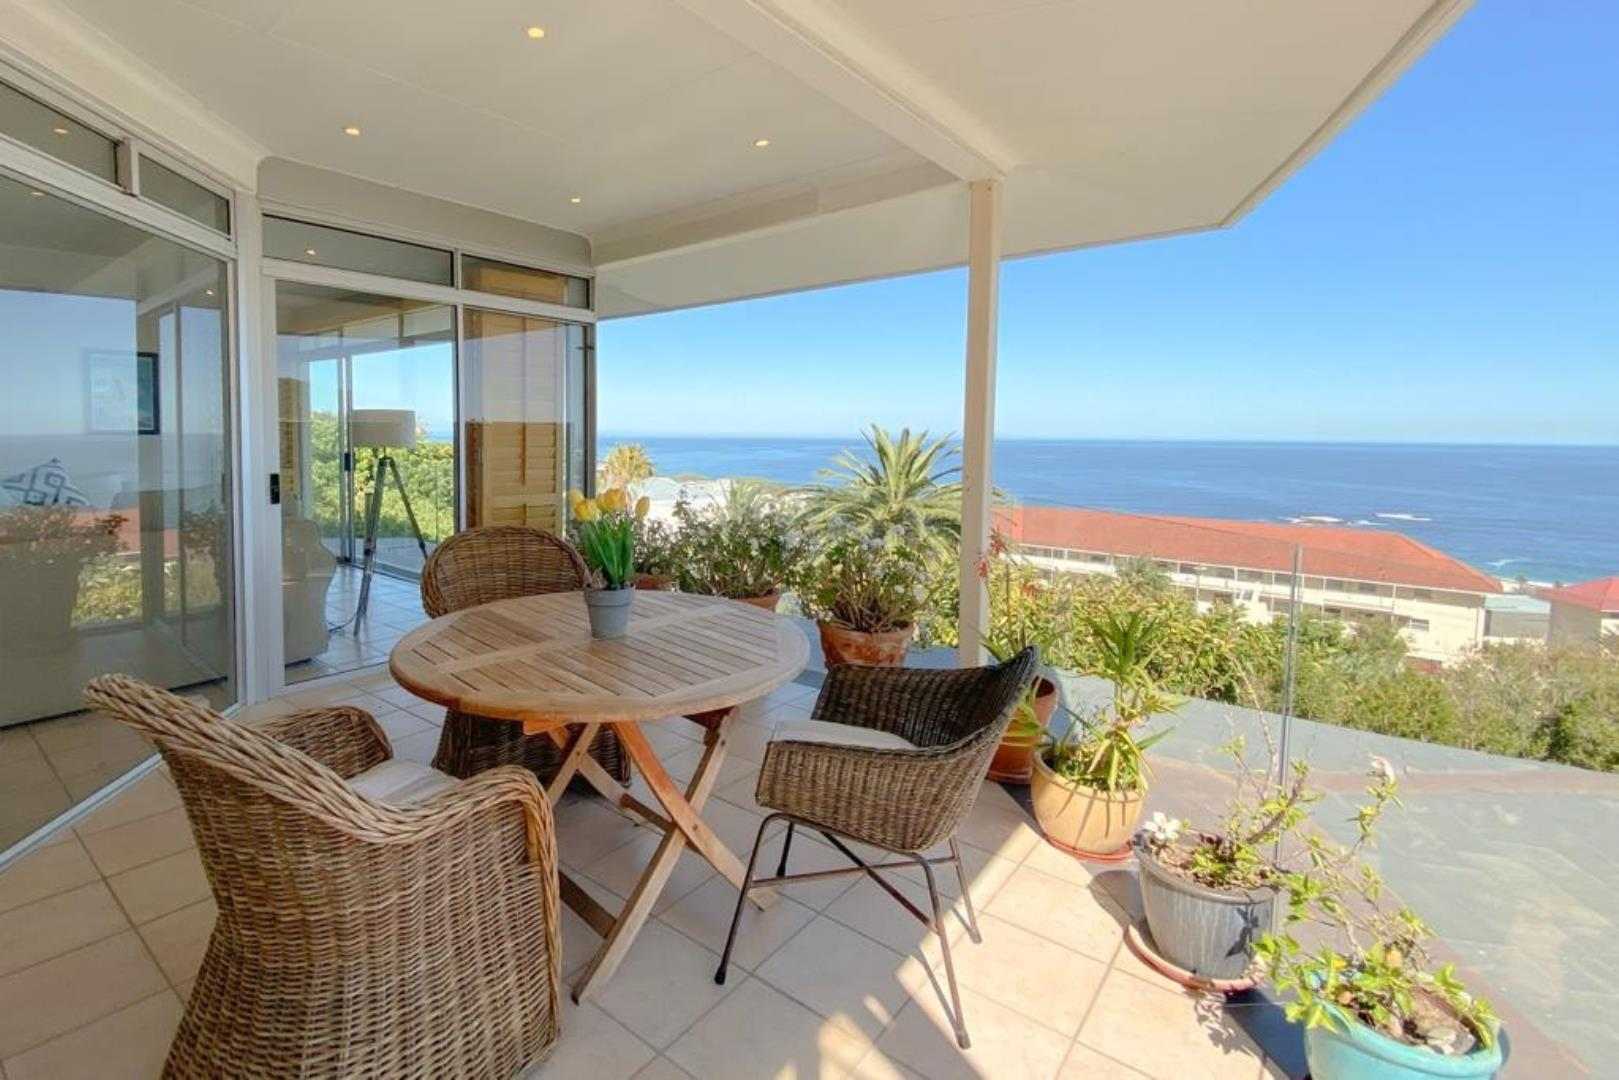 4 Bedroom  Townhouse for Sale in Cape Town - Western Cape